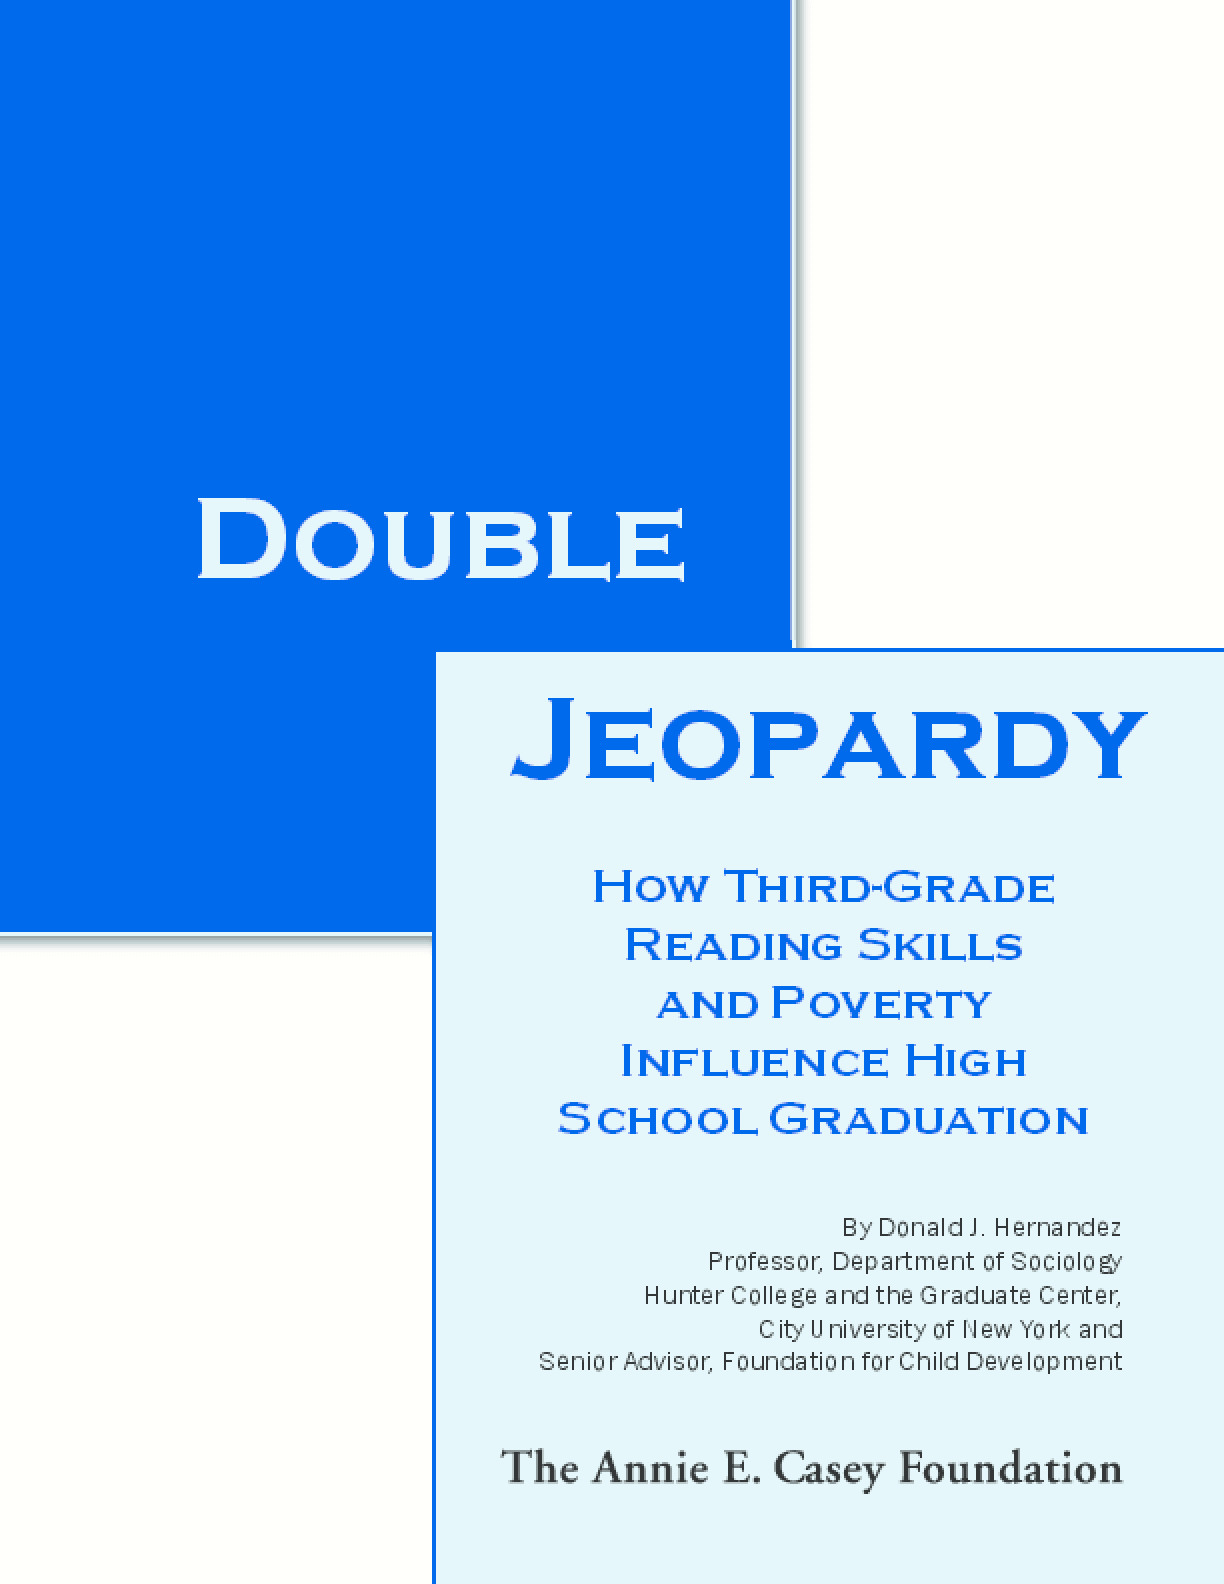 Double Jeopardy: How Third-Grade Reading Skills and Poverty Influence High School Graduation